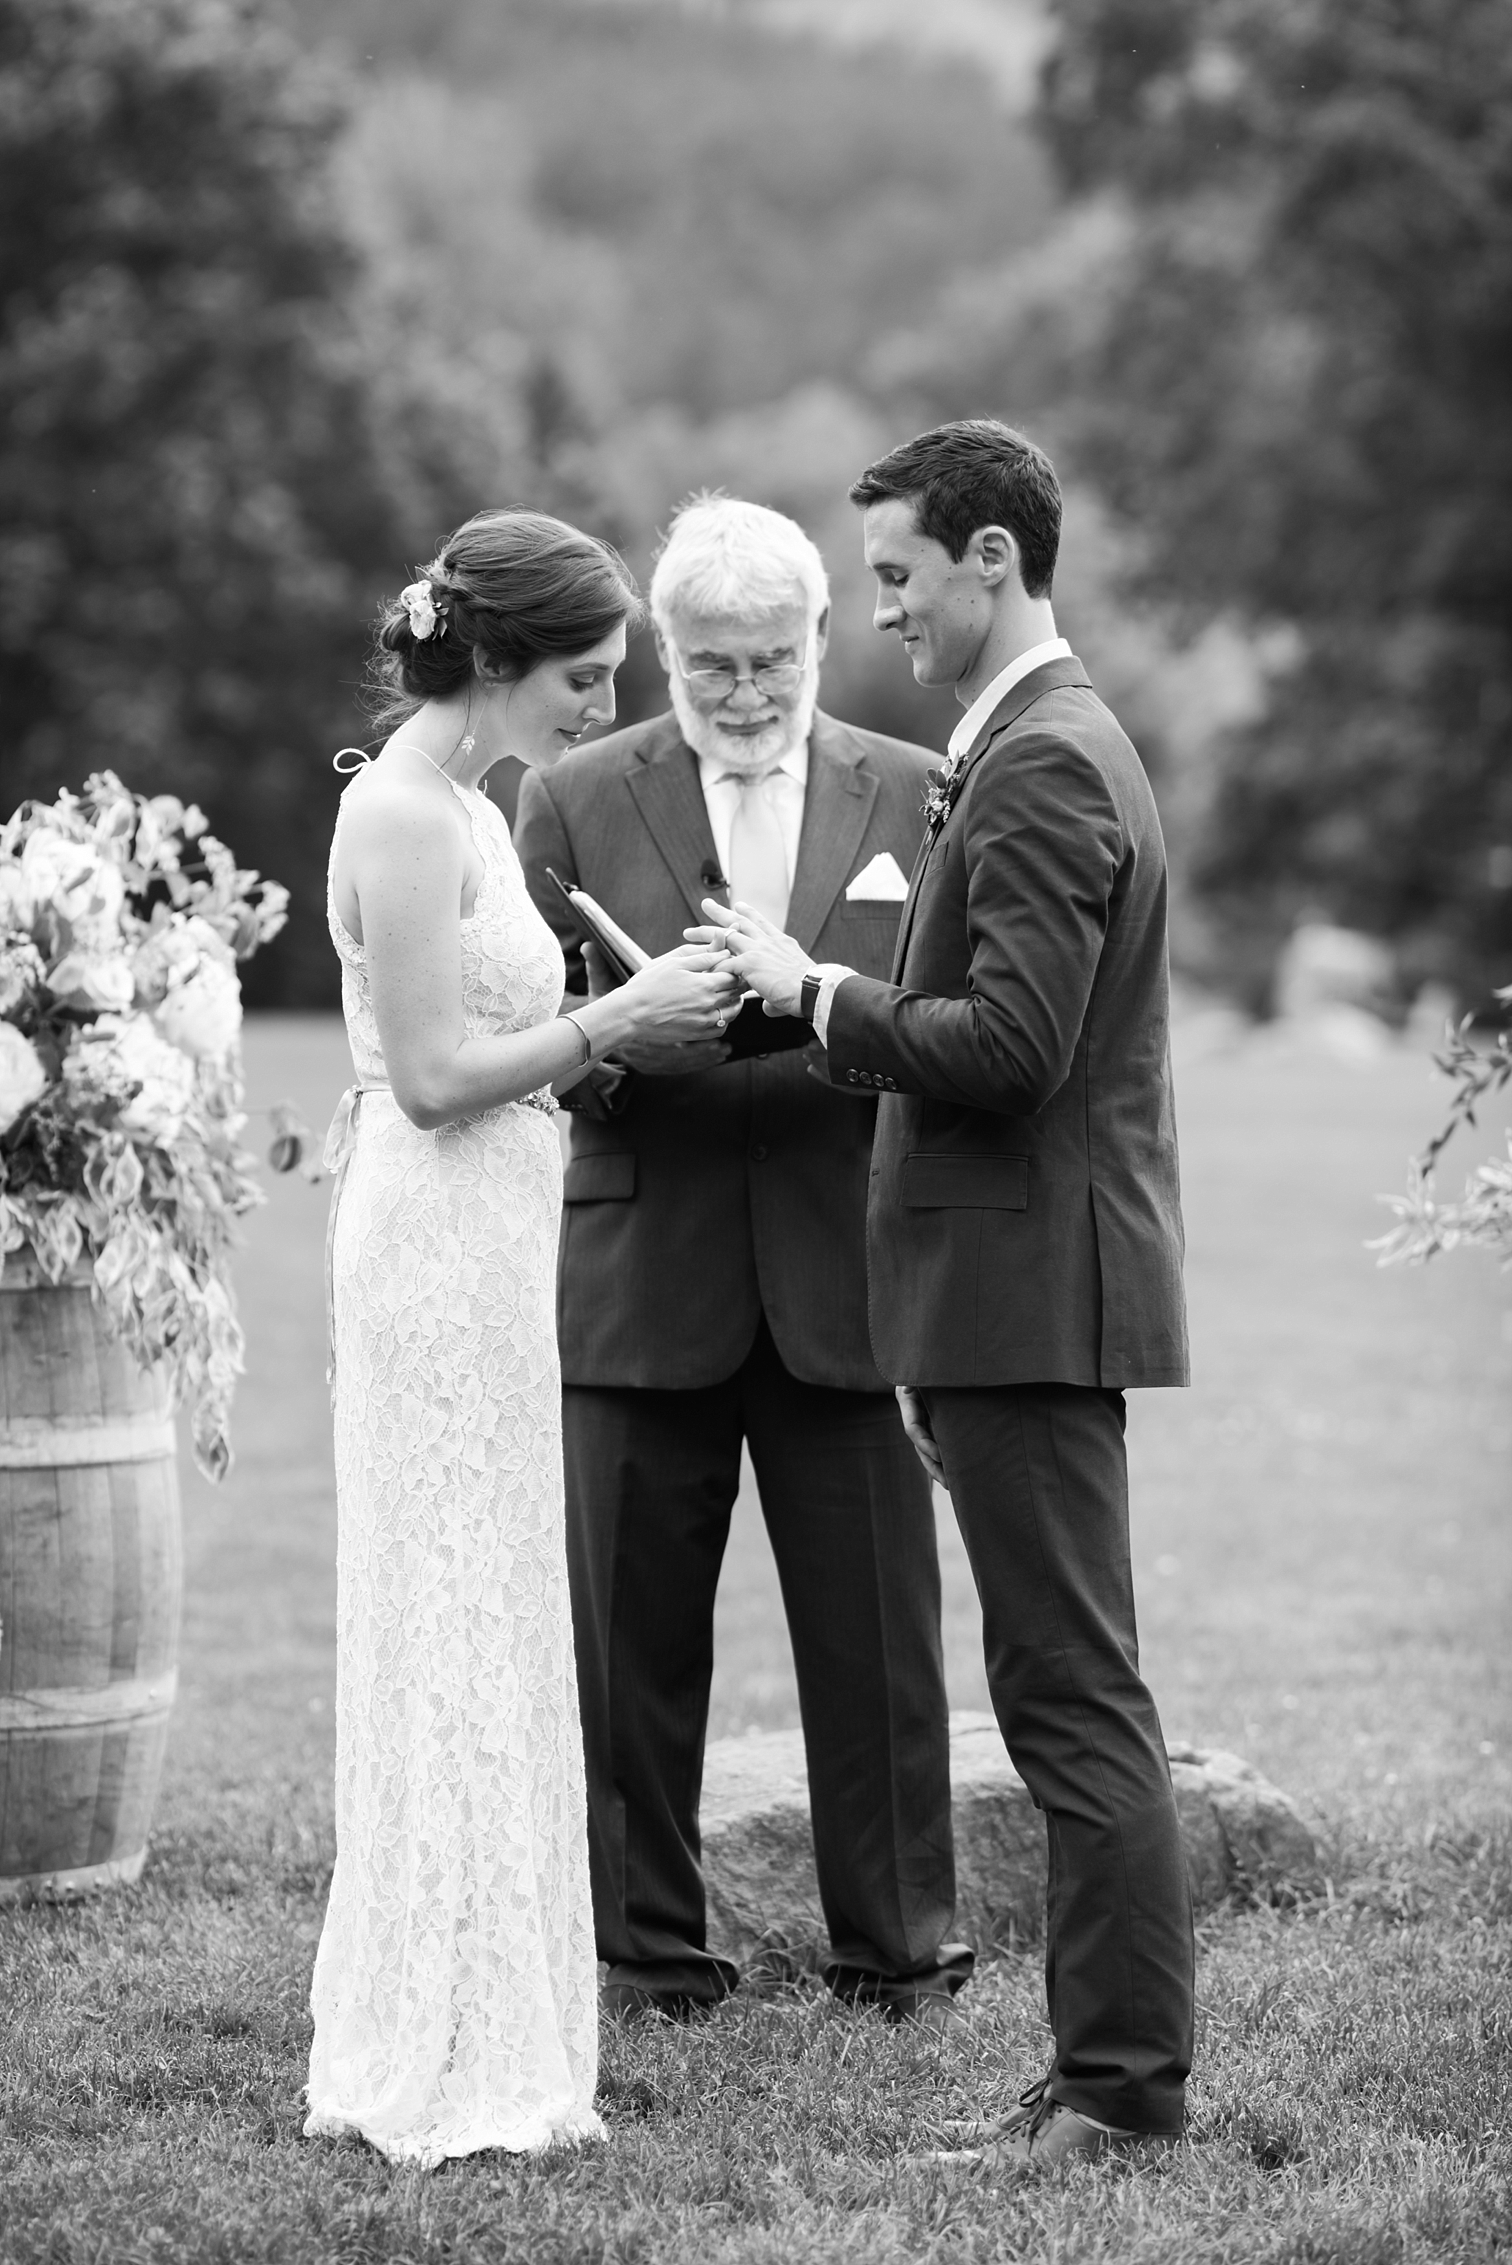 Black and White Wedding Photos, Outdoor Wedding Details, Colorado Mountain Weddings, Danielle DeFiore Photographer, Destination Wedding Photographers, Weddings in Boulder Colorado, Outdoor Ceremony, Film Photographer, Wedding Rings